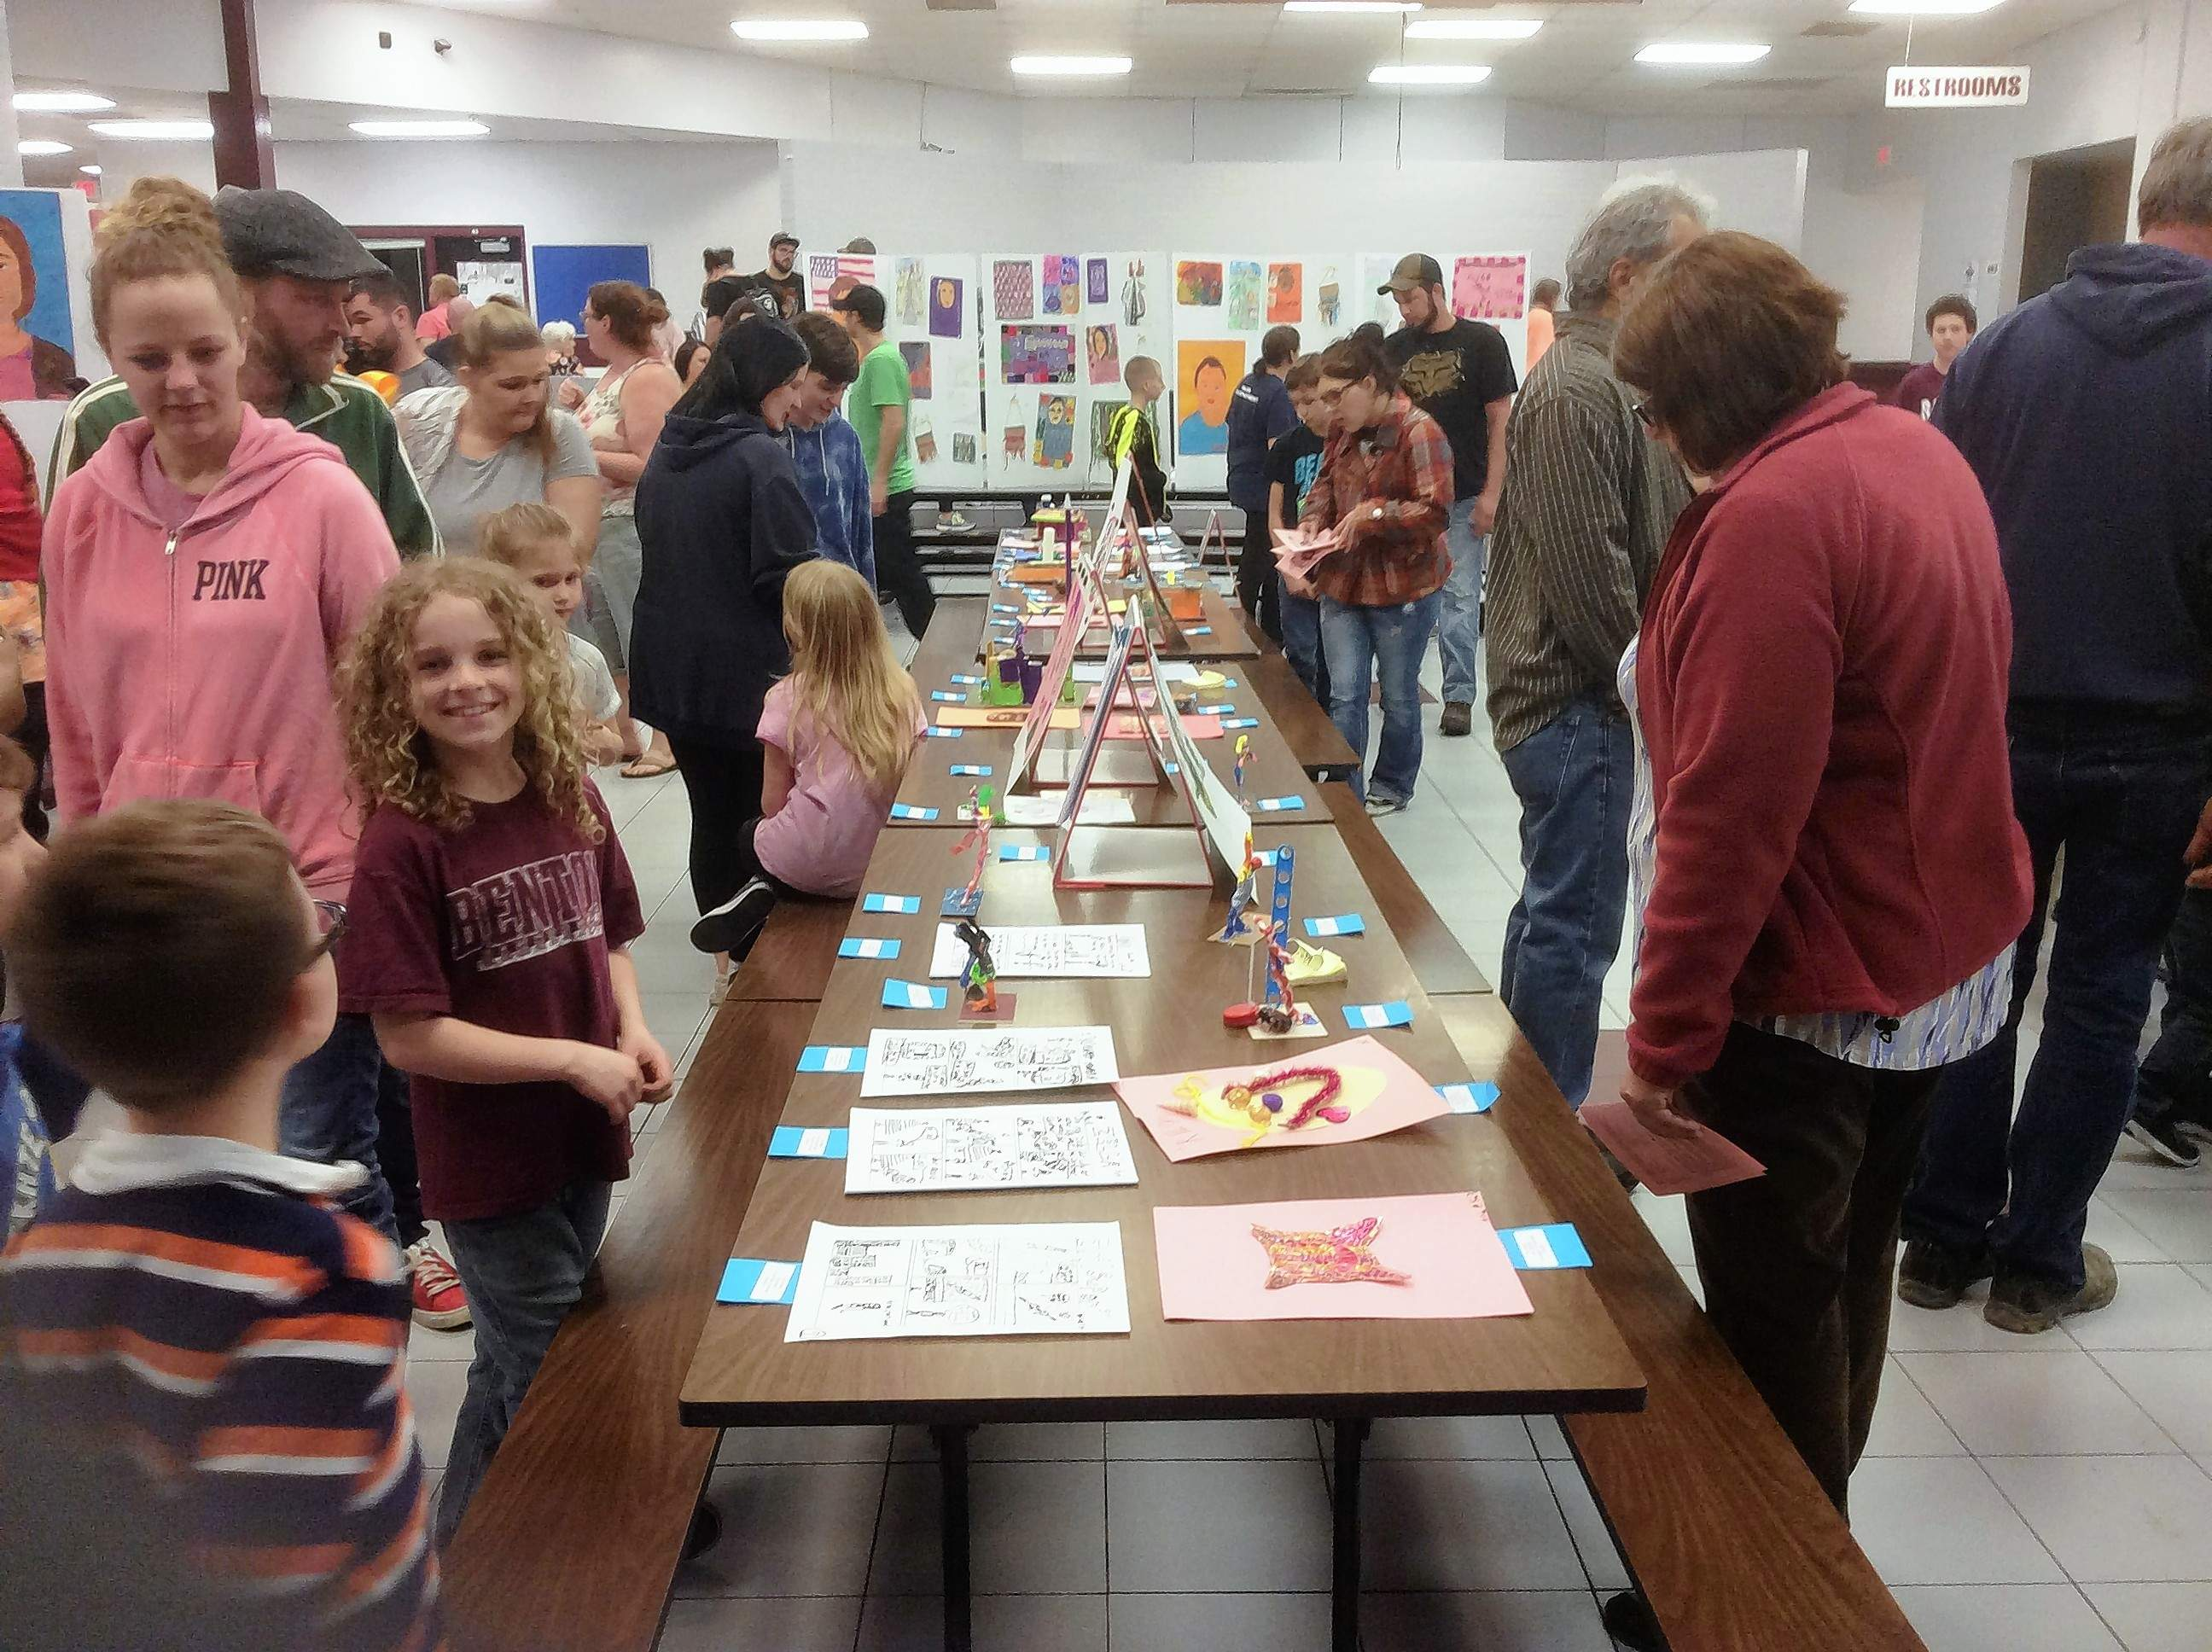 Many young artists and parents flocked to the Benton Middle School Gymnasium and Commons April 24 to see hundreds of K-8 works on display.